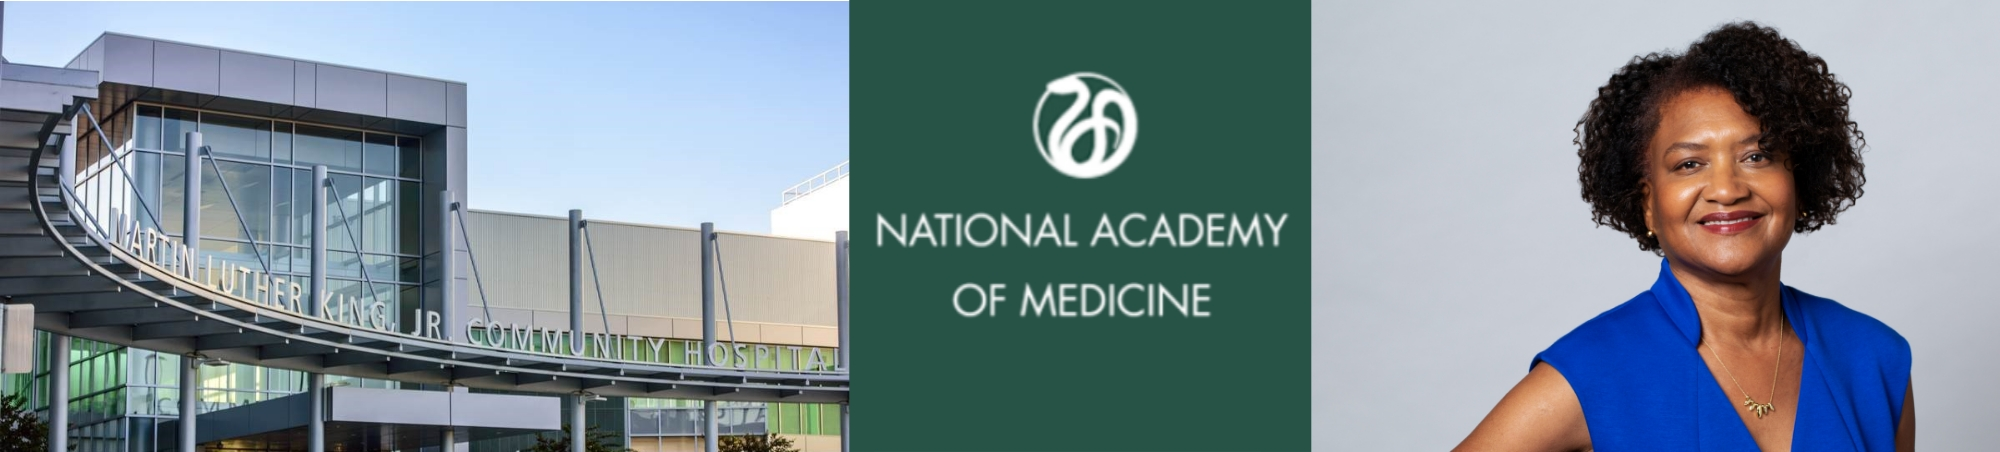 MLKCH CEO elected to National Academy of Medicine